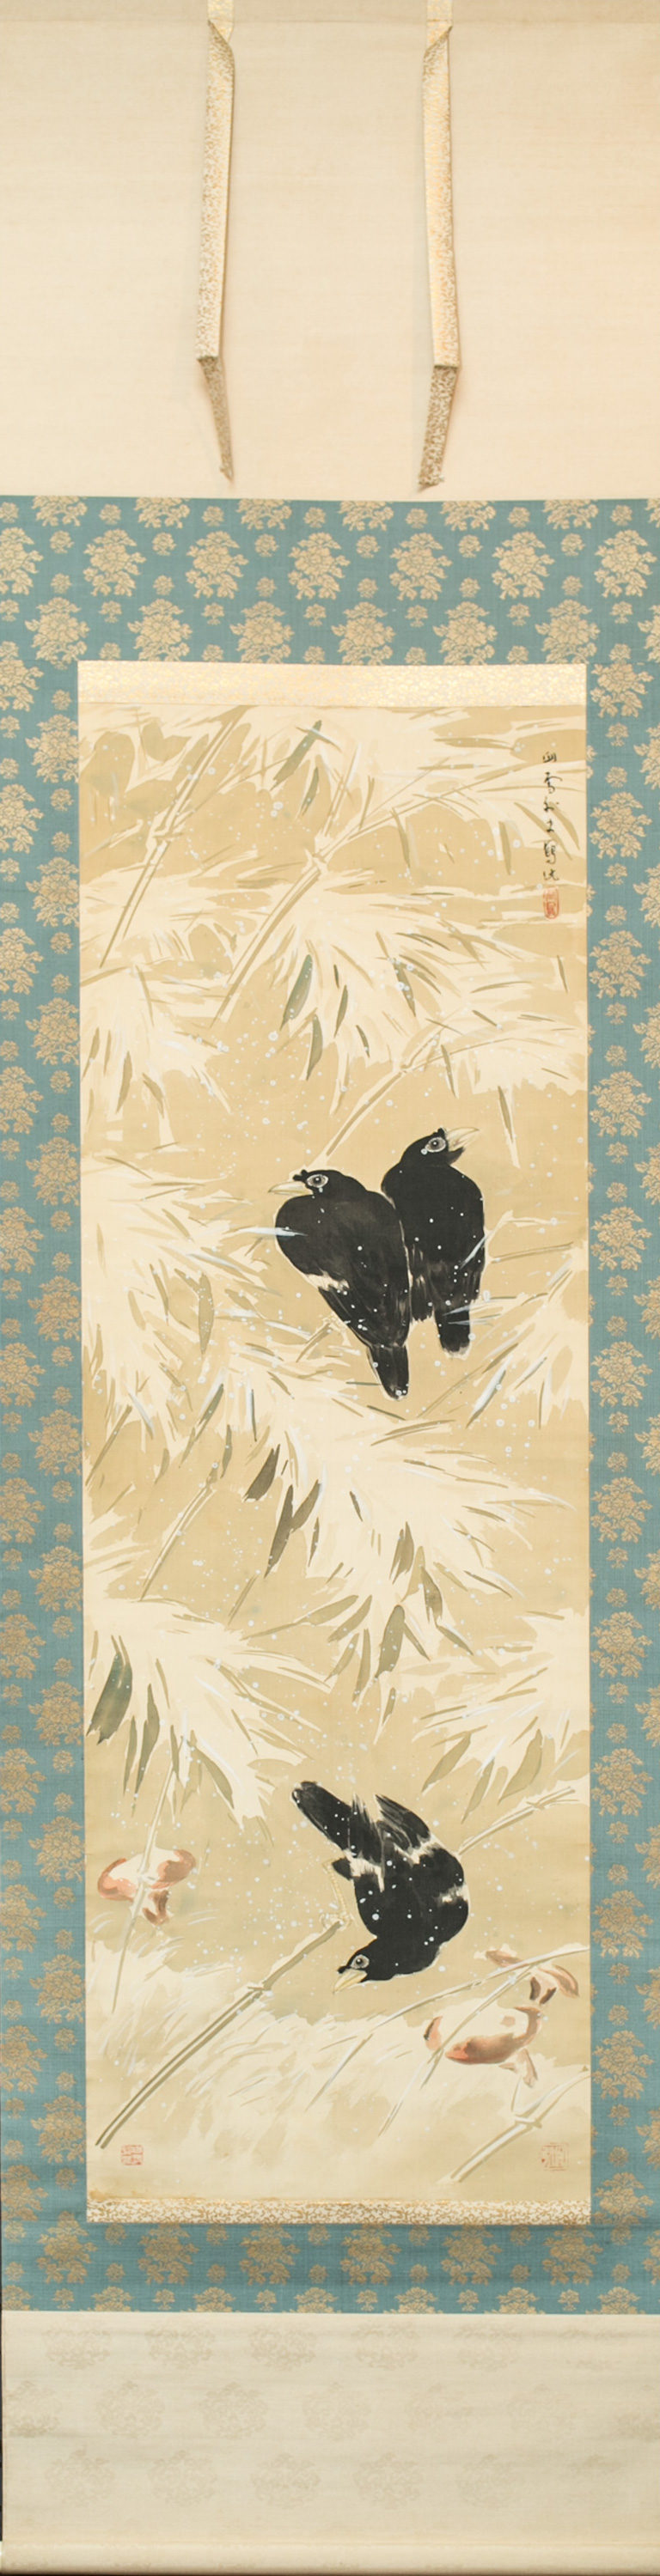 Japanese Scroll: Crows in Snowy Landscape